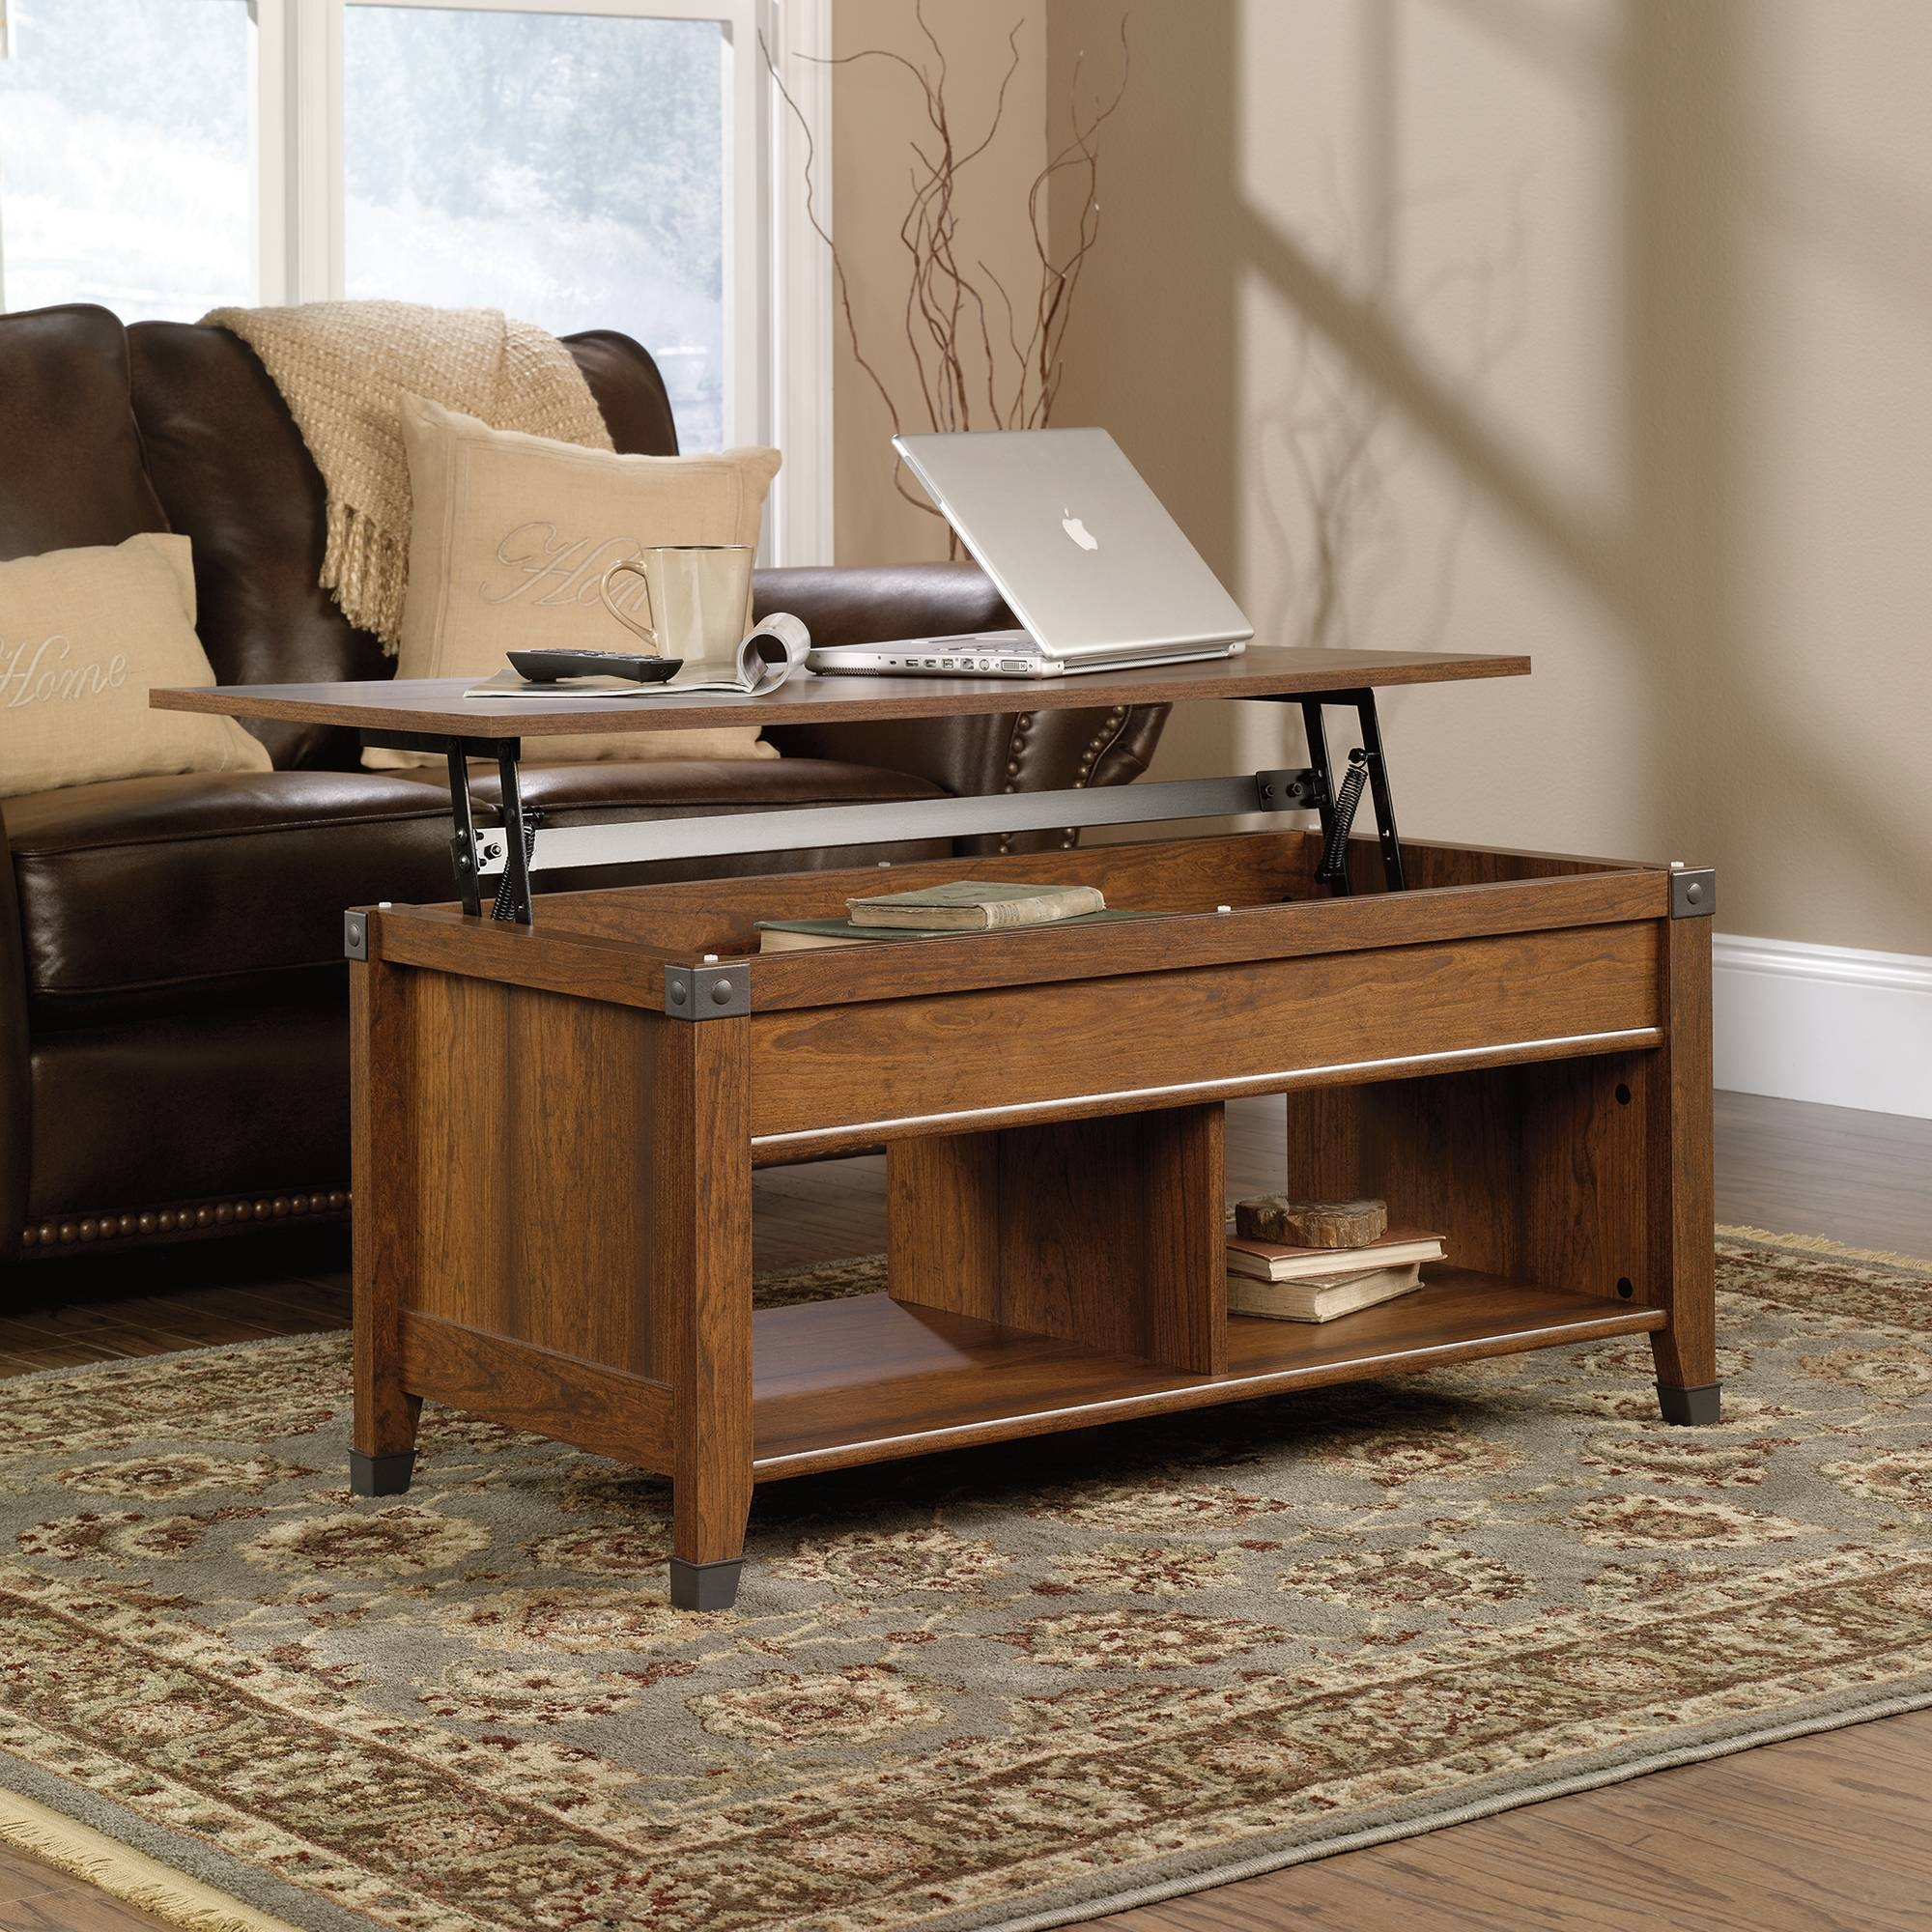 Carson Forge | Lift-Top Coffee Table | 414444 | Sauder regarding Lift Up Top Coffee Tables (Image 4 of 30)